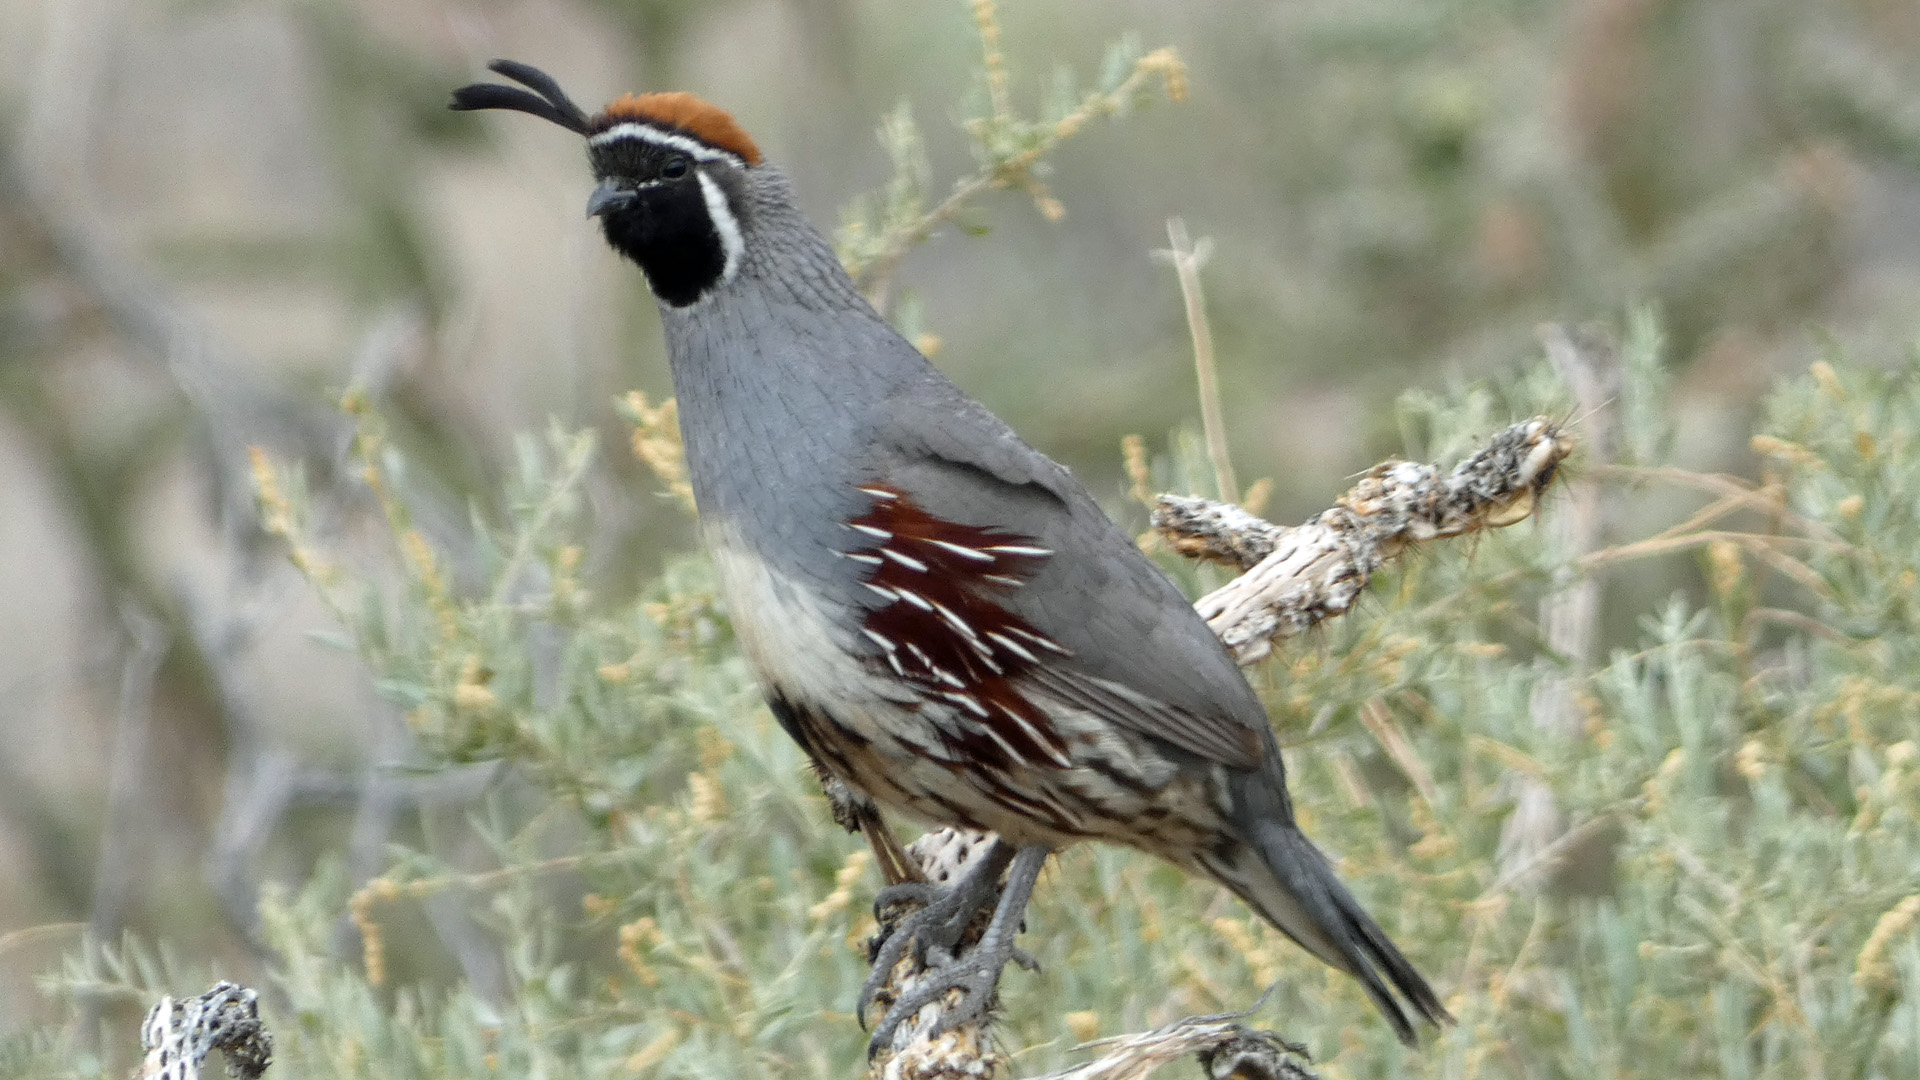 Male, Sandia Mountains west foothills, June 2021